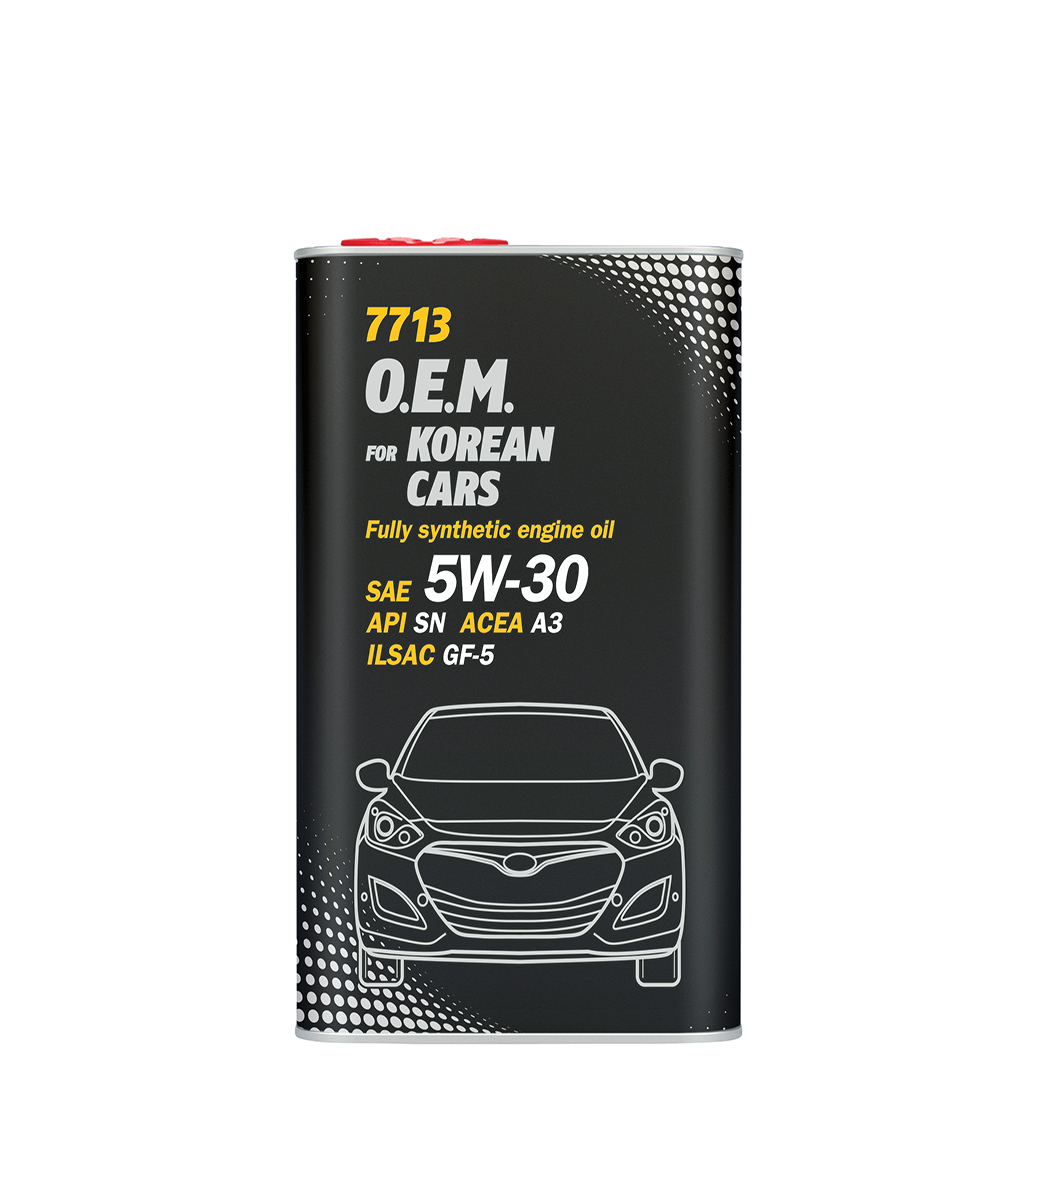 O.E.M. for Korean cars 5W-30